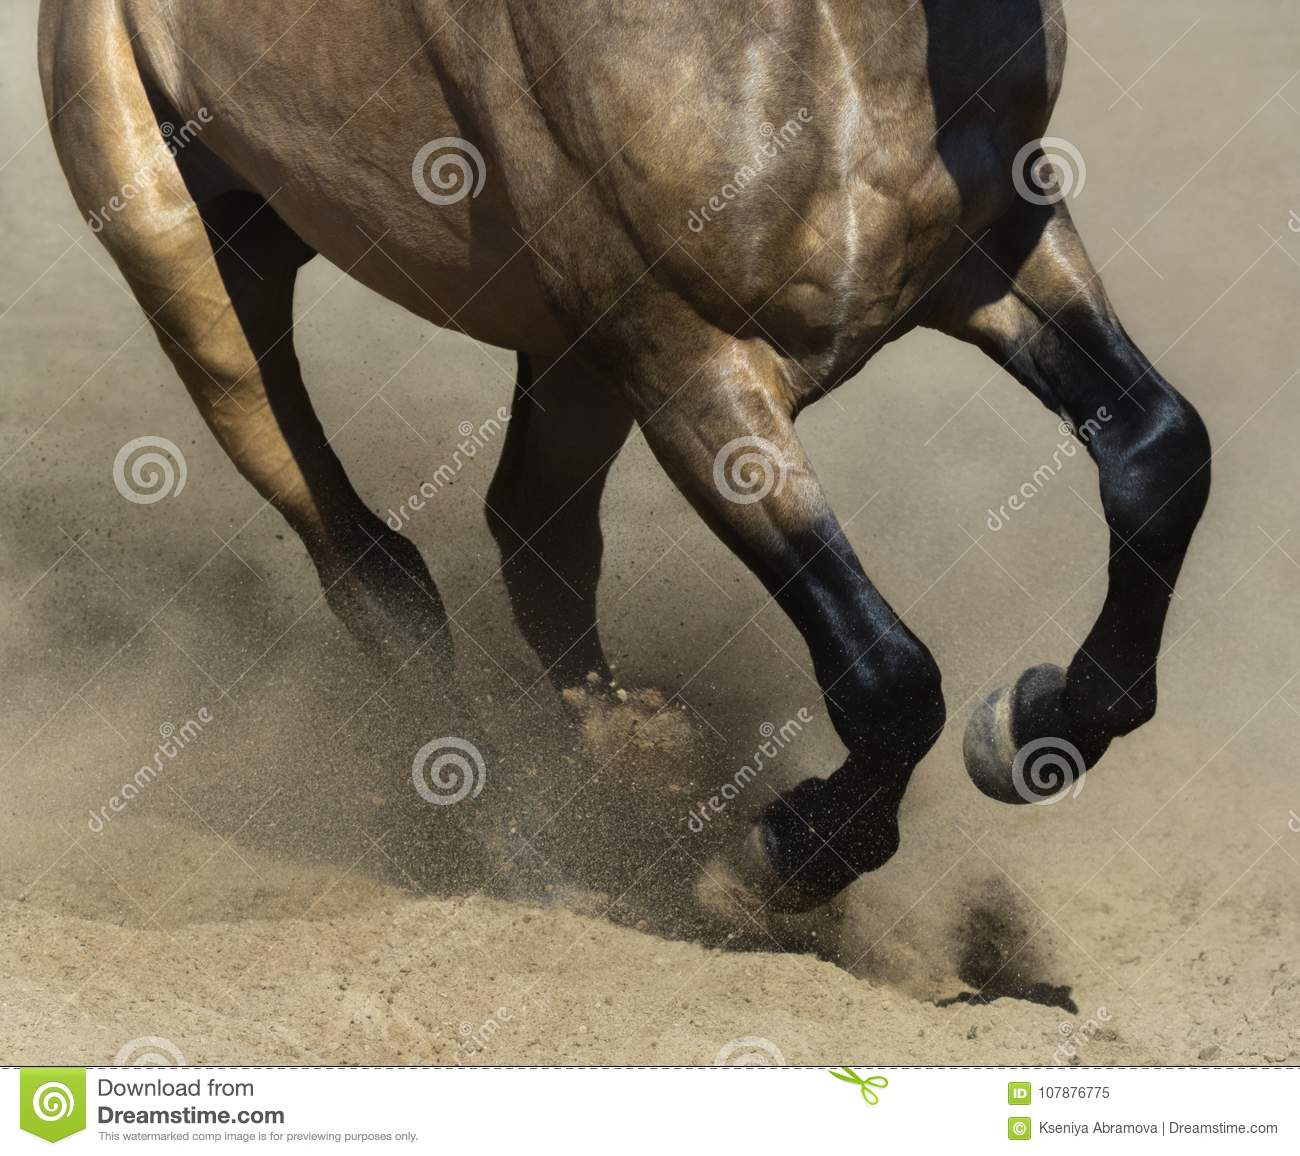 7 439 Black Running Horse Photos Free Royalty Free Stock Photos From Dreamstime